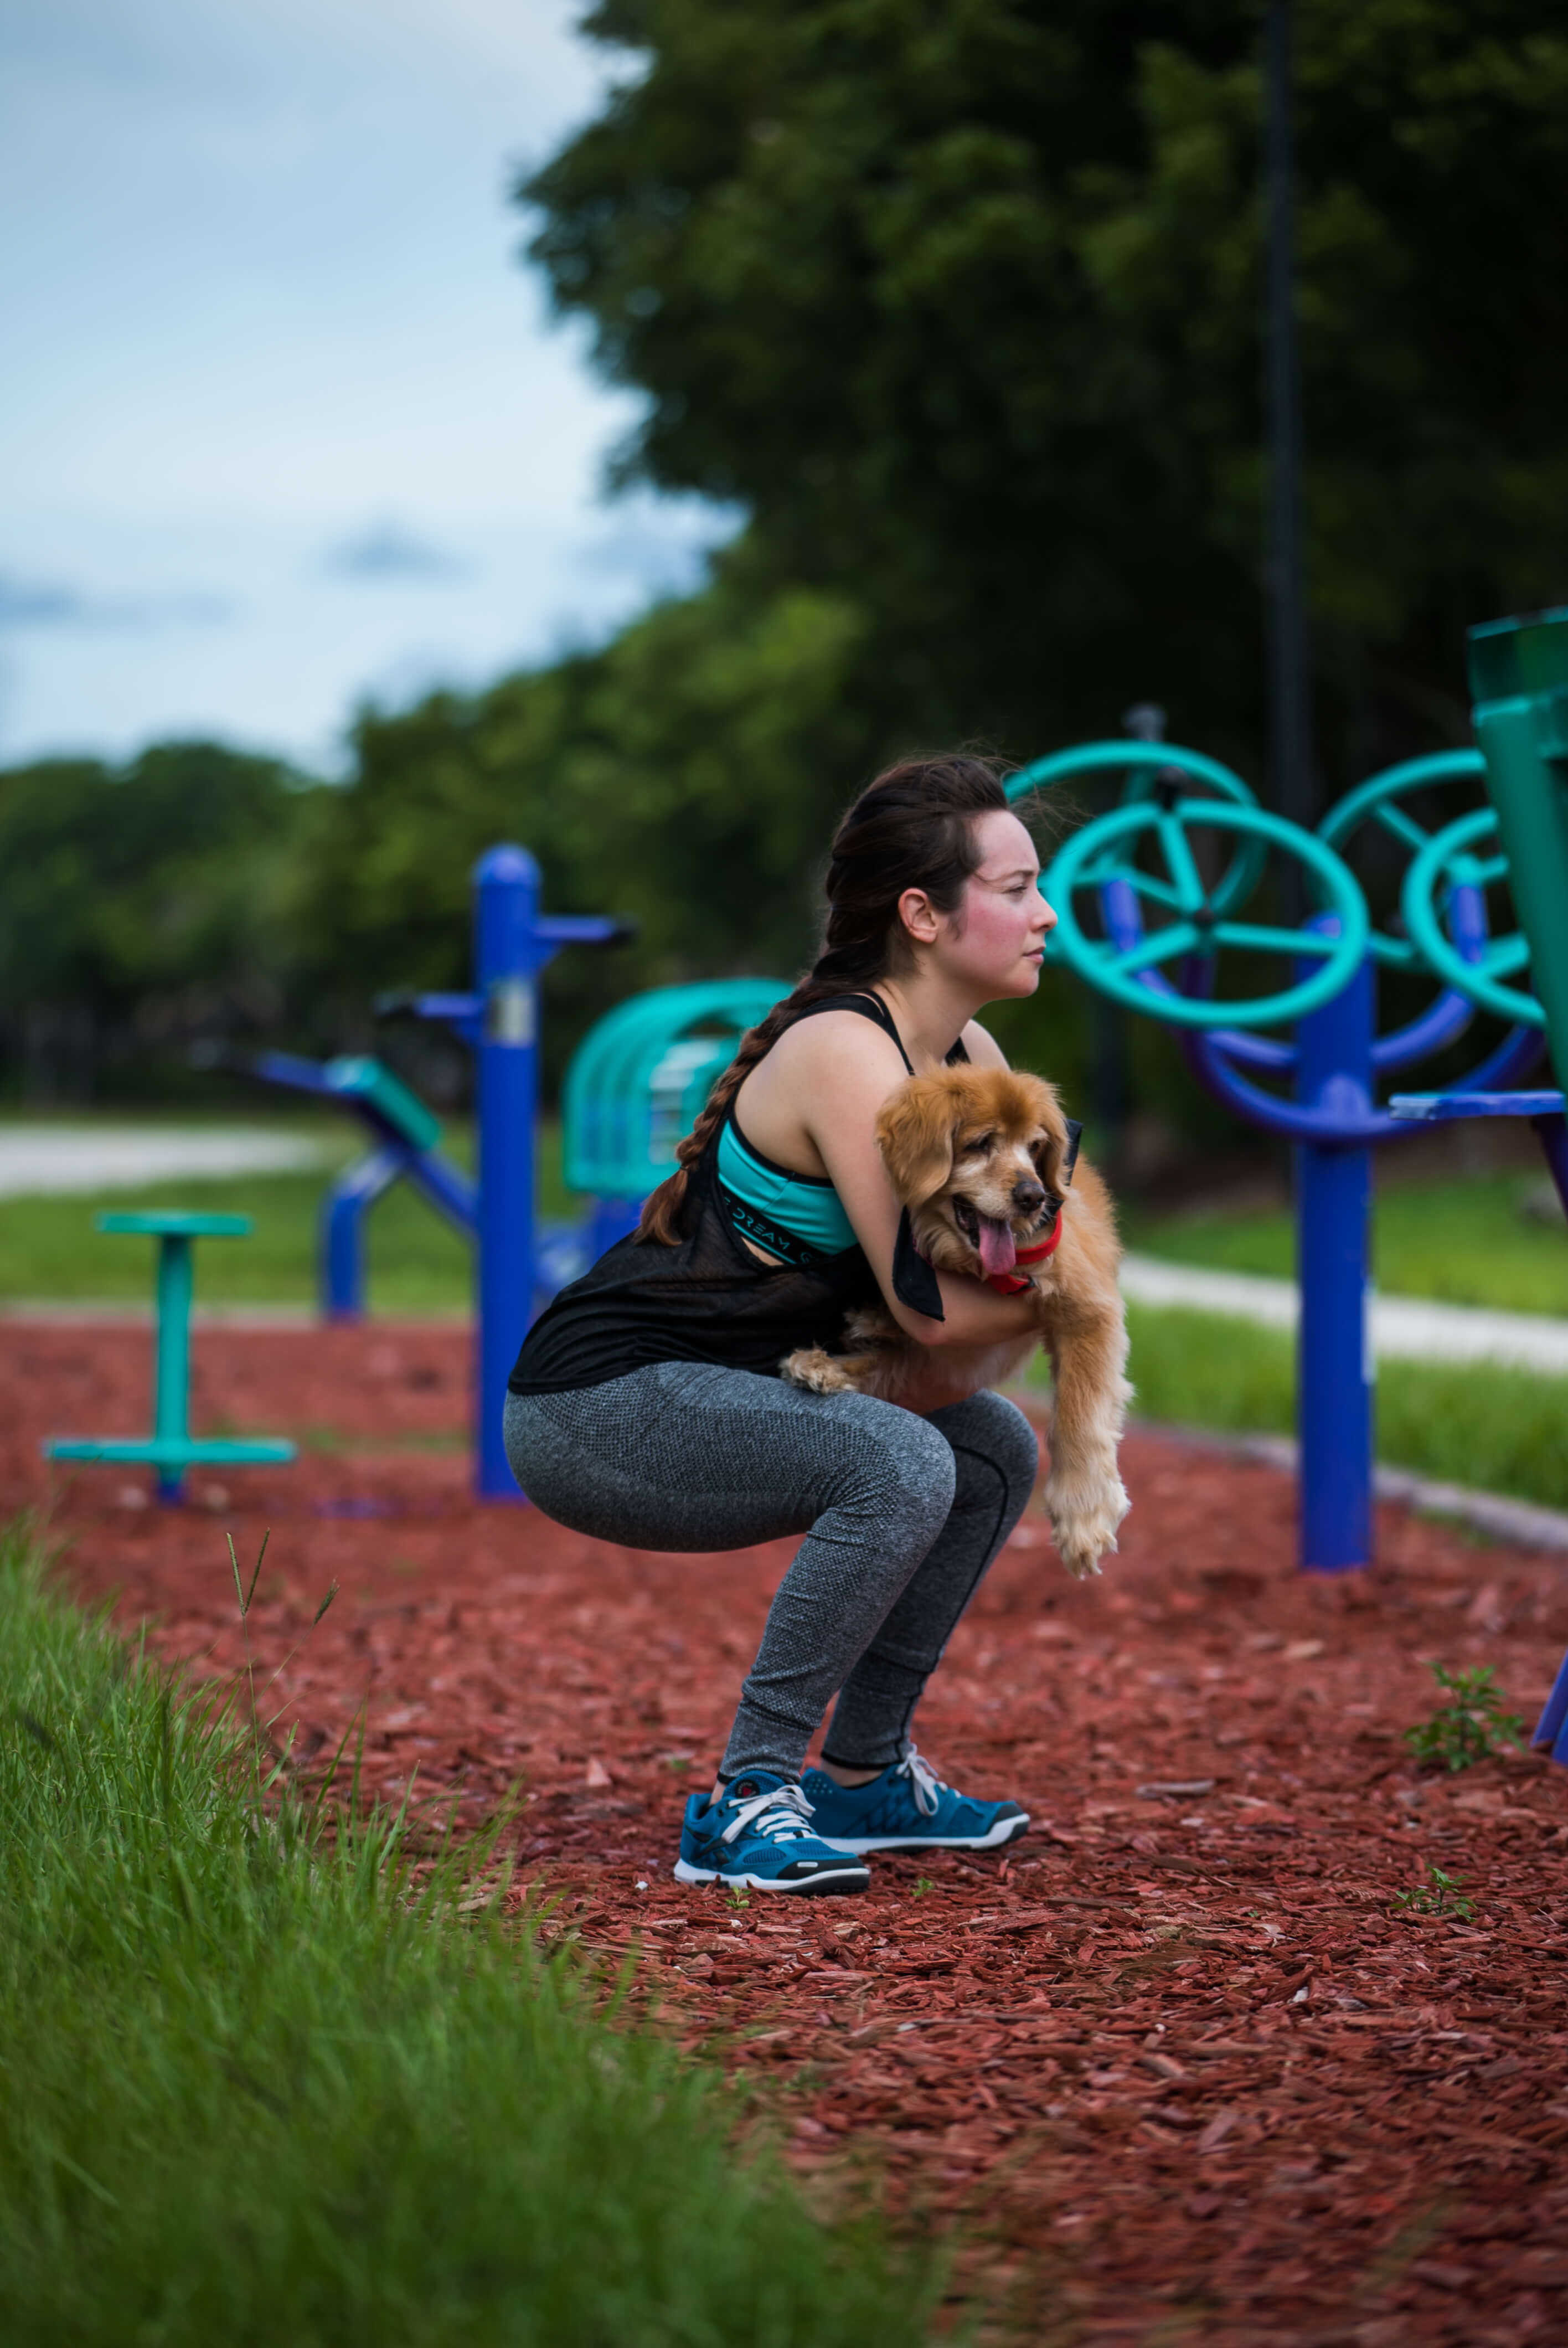 squat exercises and workouts with dog younfolded blog